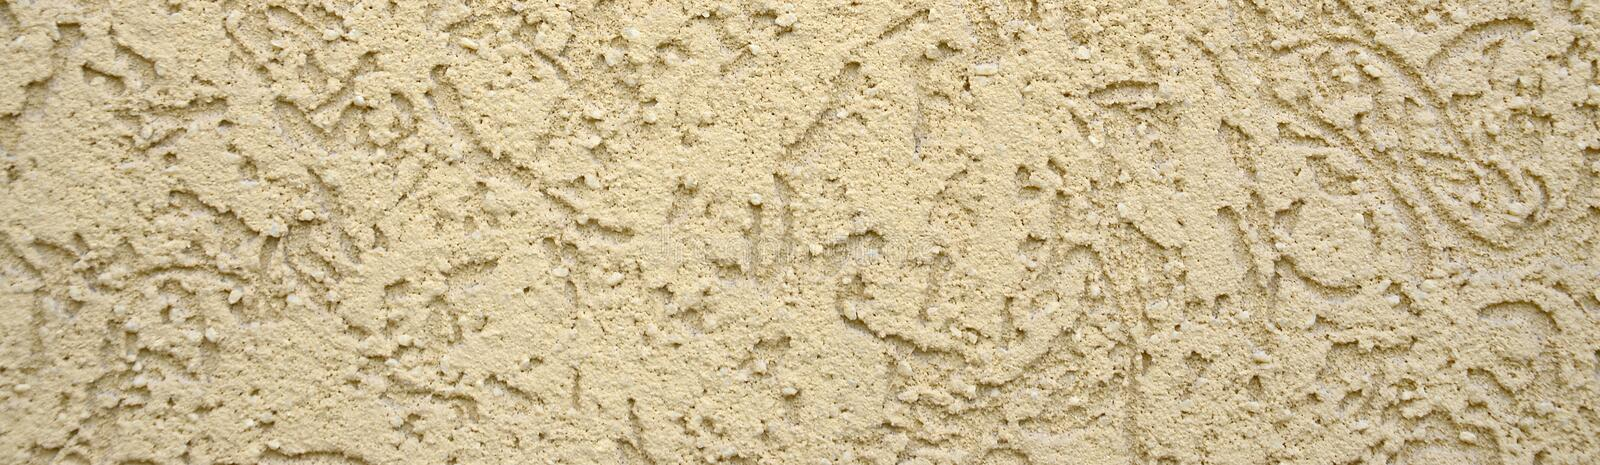 The texture of the beige decorative plaster in bark beetle style. Russian variation of decorating facade walls stock photography